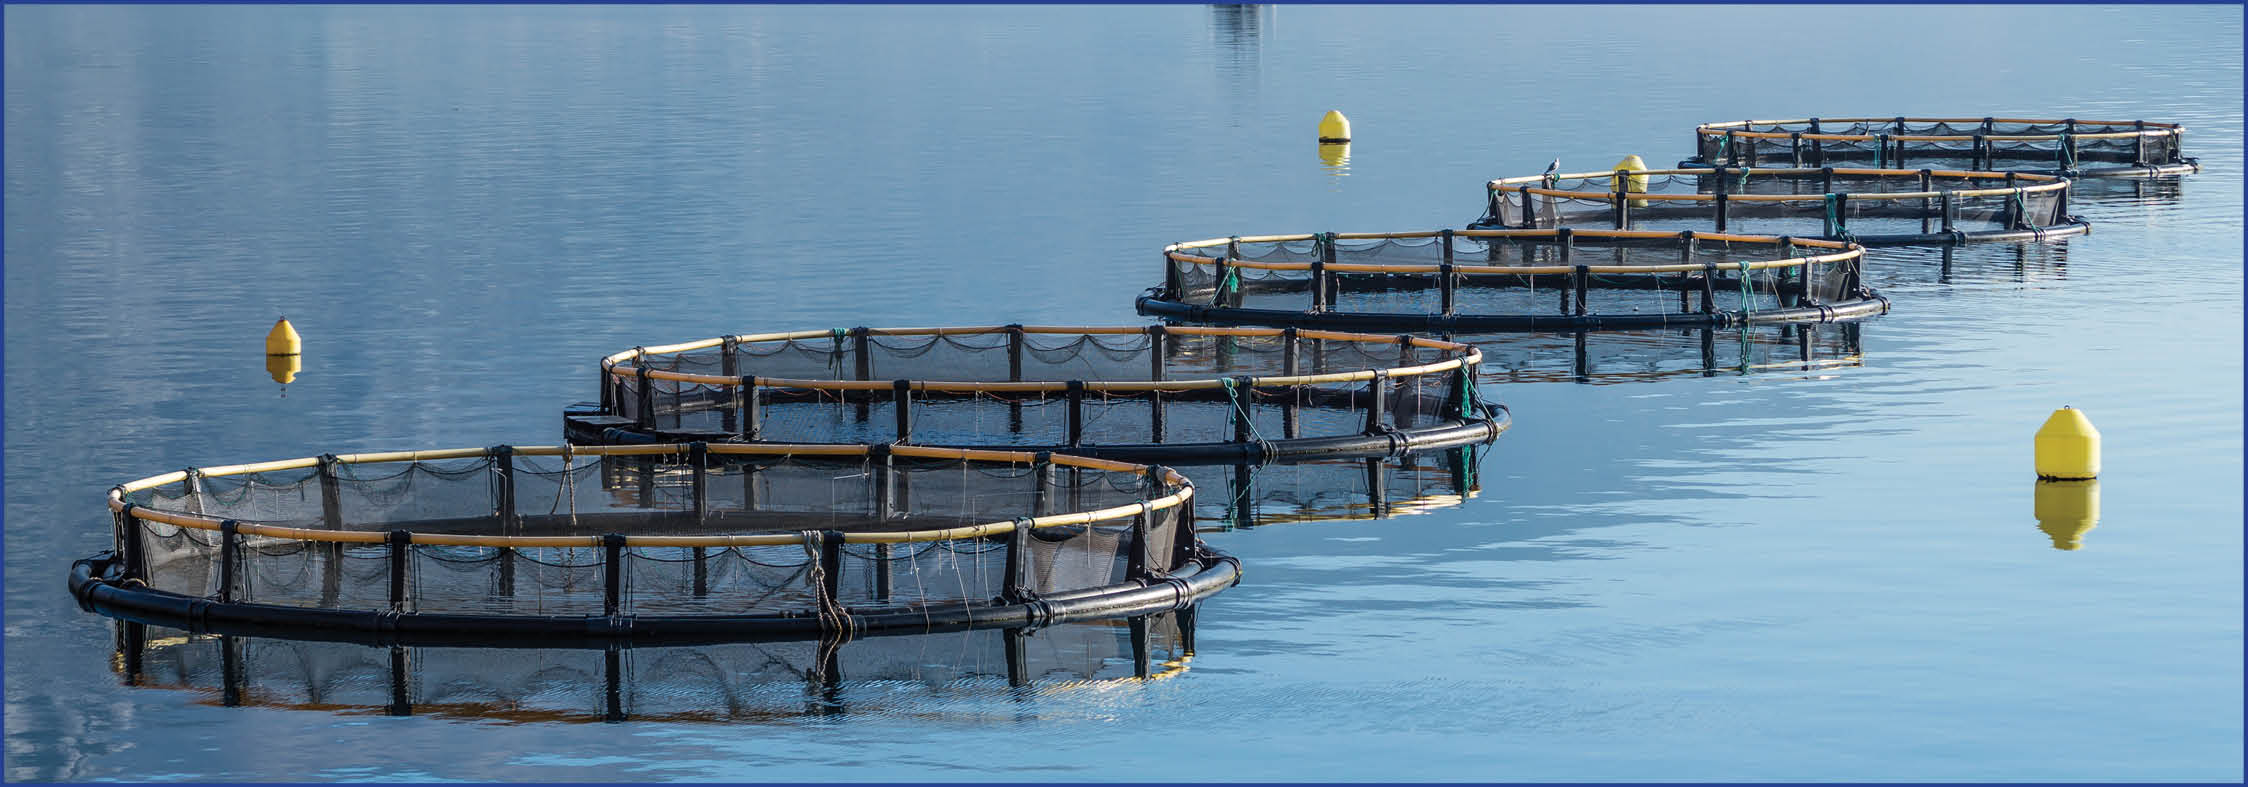 Great Lakes advocates say that commercial net-pen fish farming, pictured above, does not belong in Michigan's public waters.